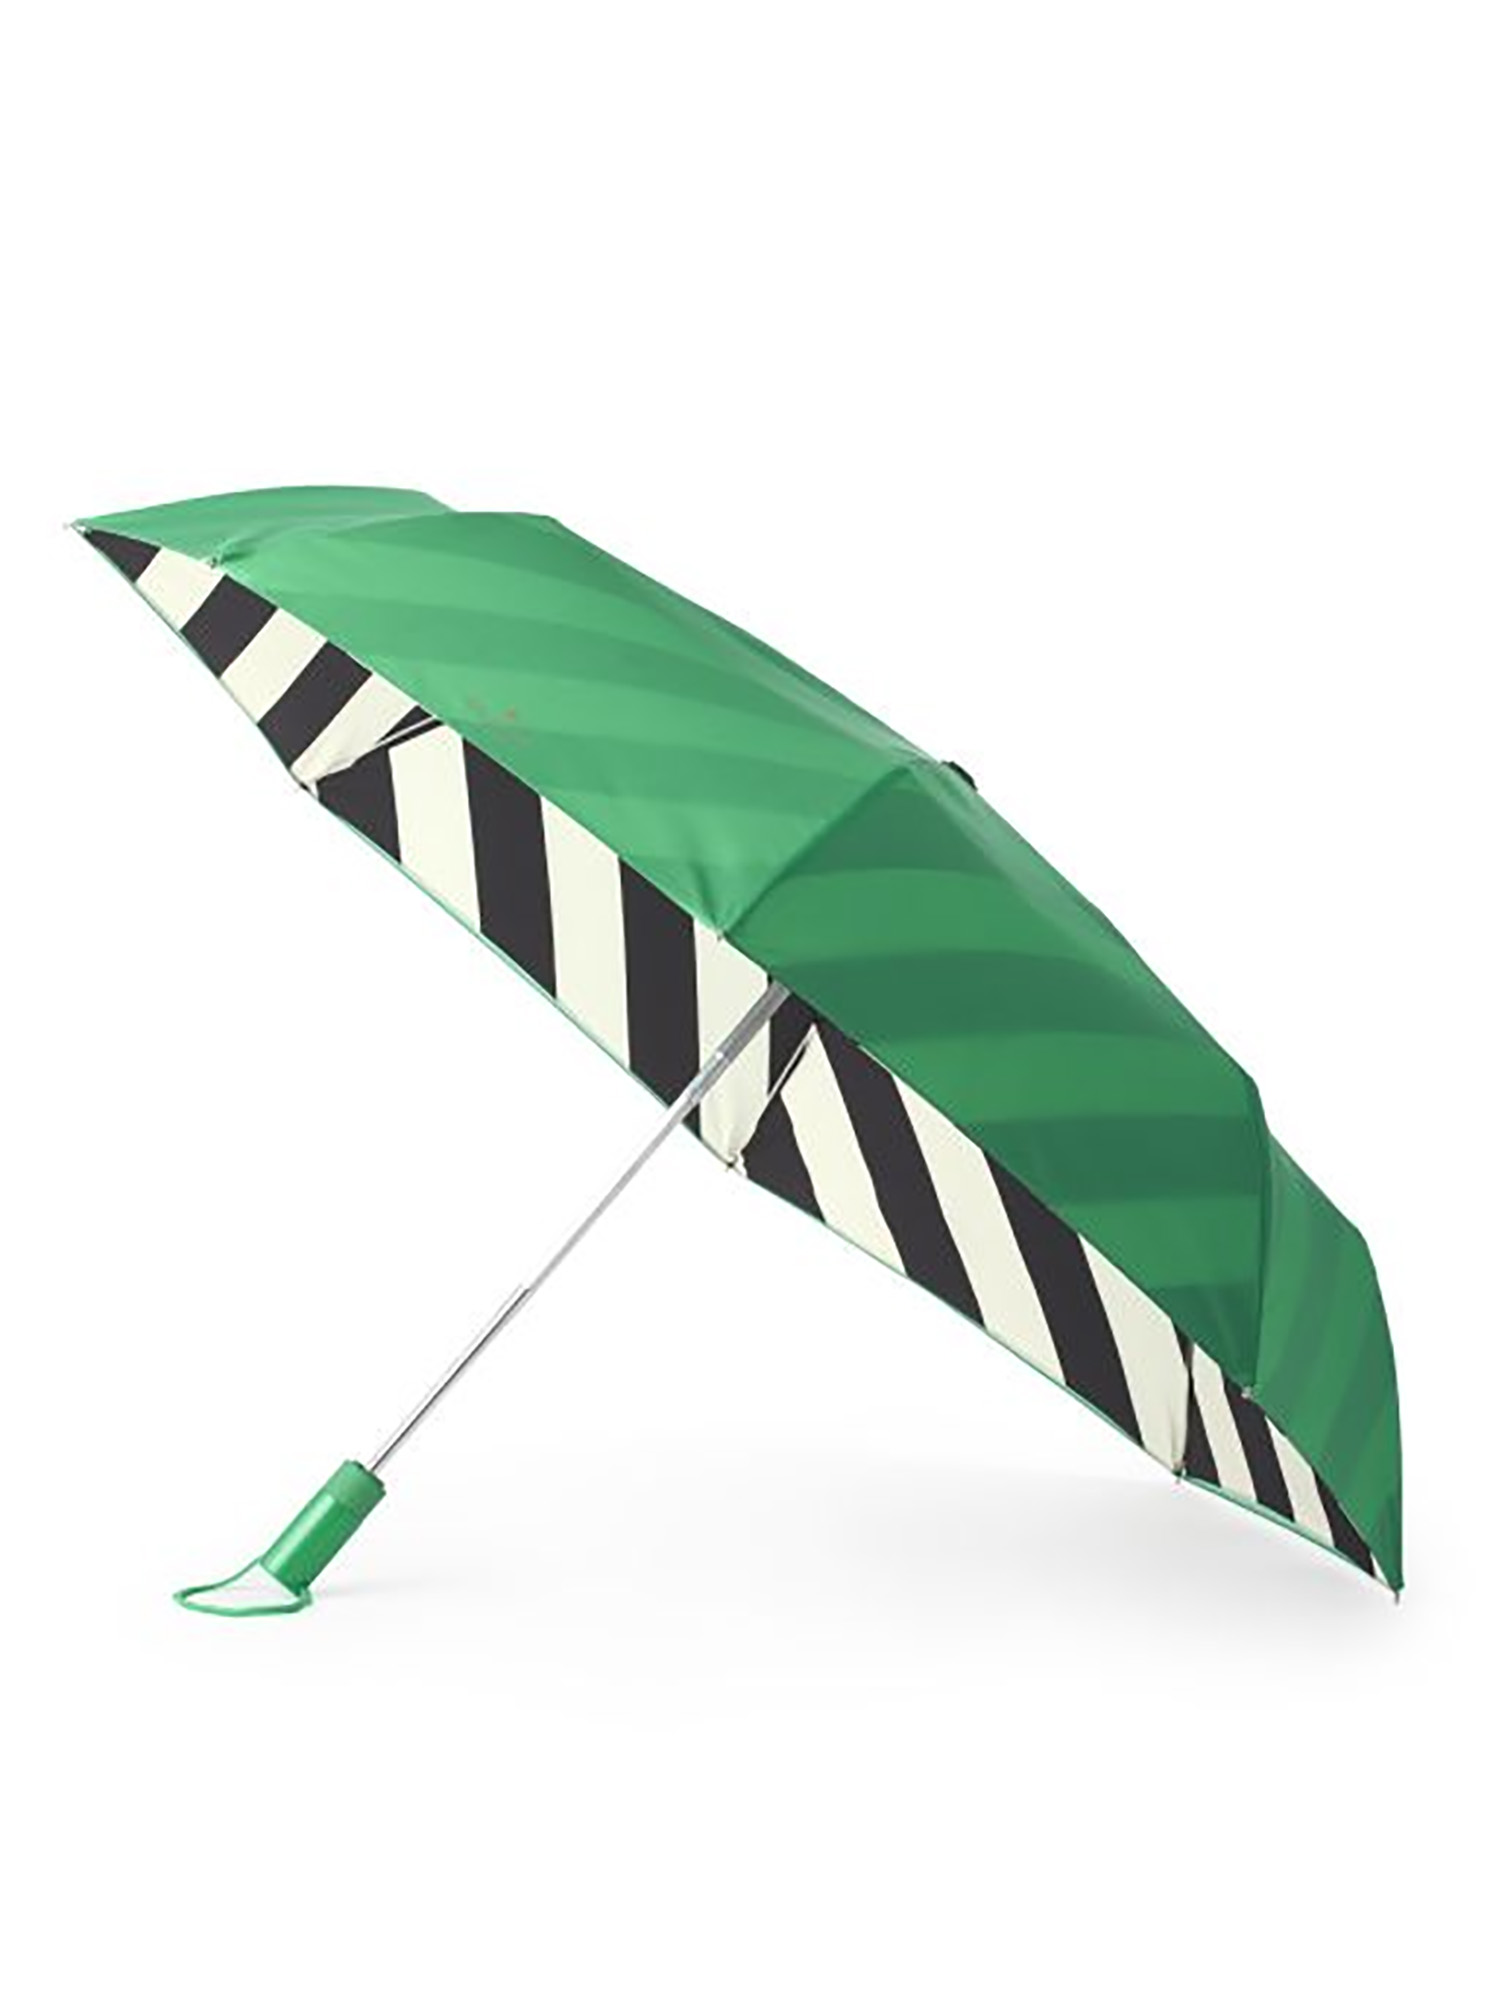 Kate Spade New York Striped Lining Travel Umbrella